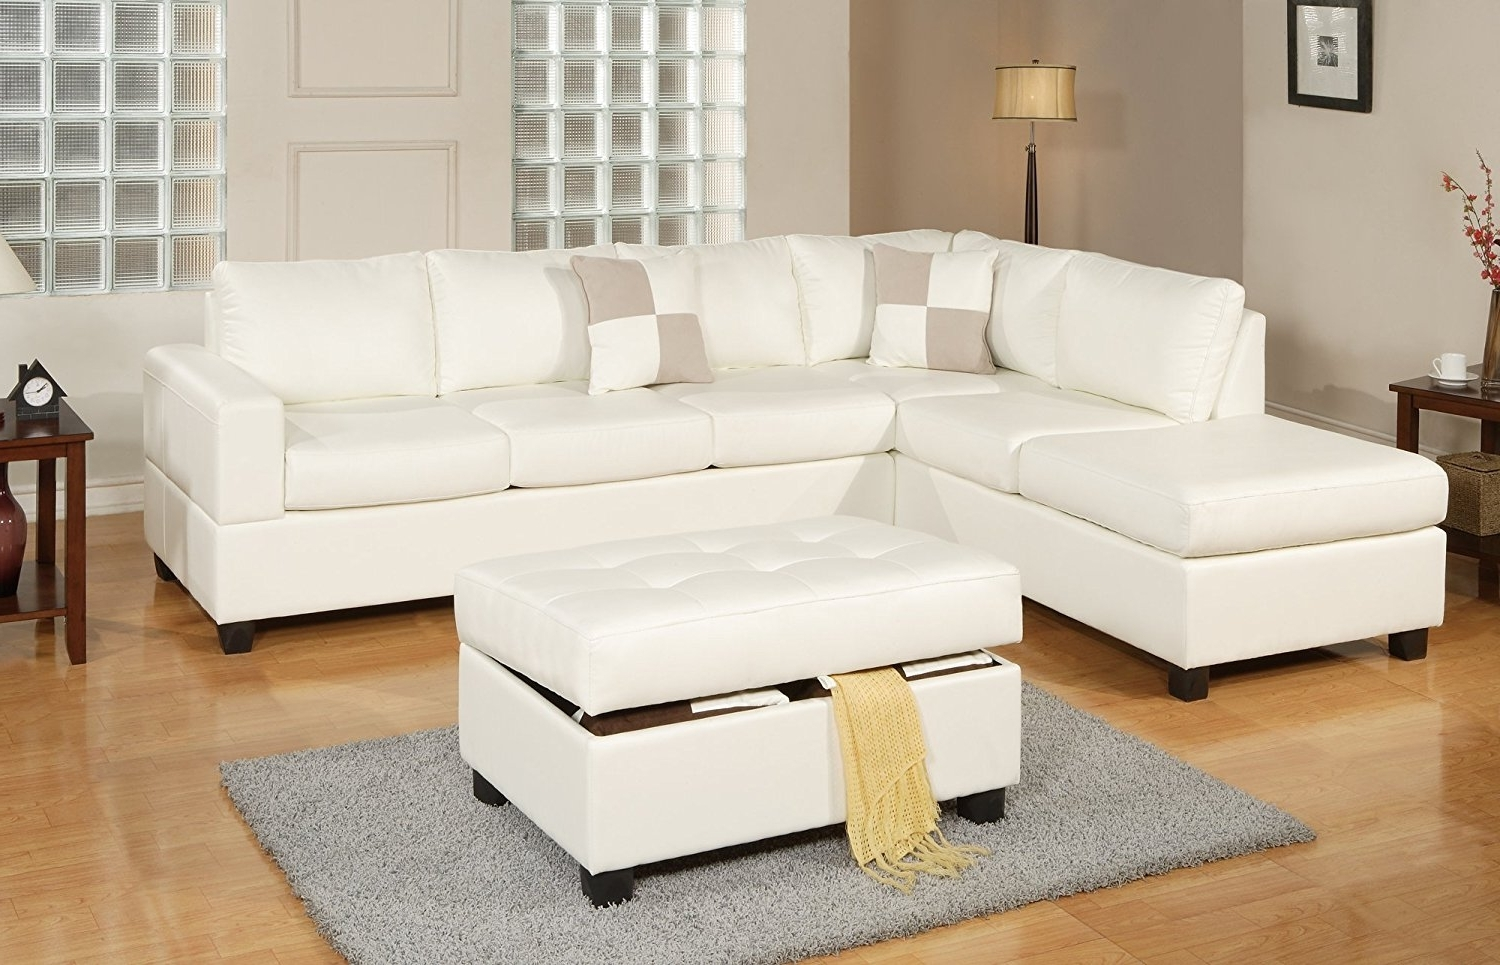 Leather Sectionals With Ottoman With Well Known Amazon: Bobkona Soft Touch Reversible Bonded Leather Match  (View 15 of 15)